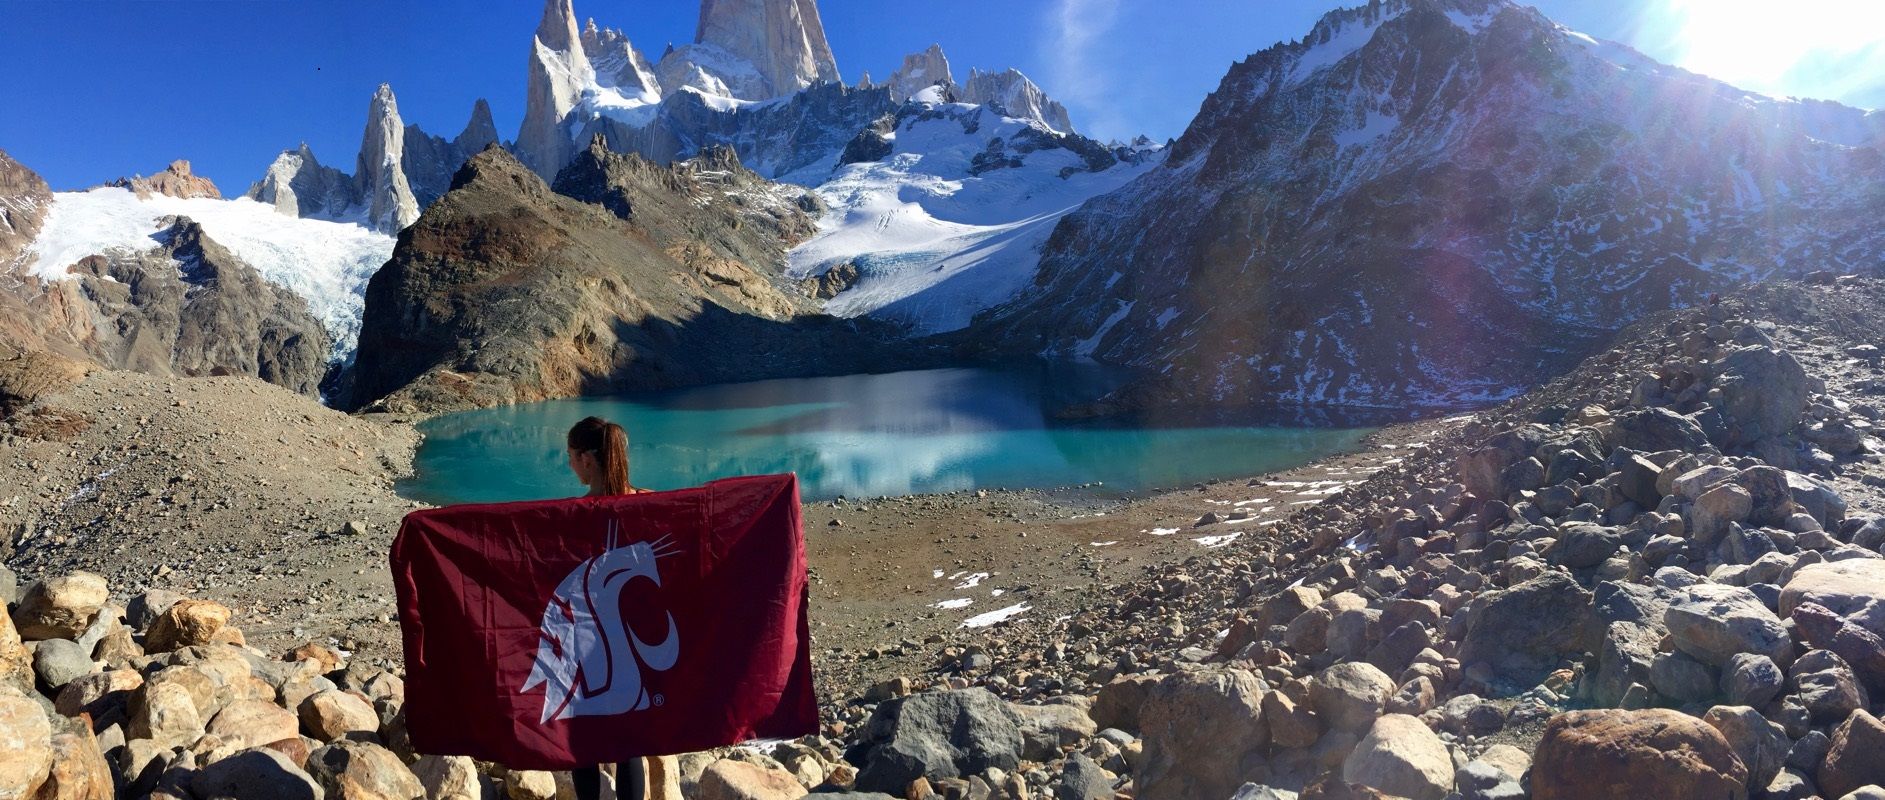 Coug flag in Argentina